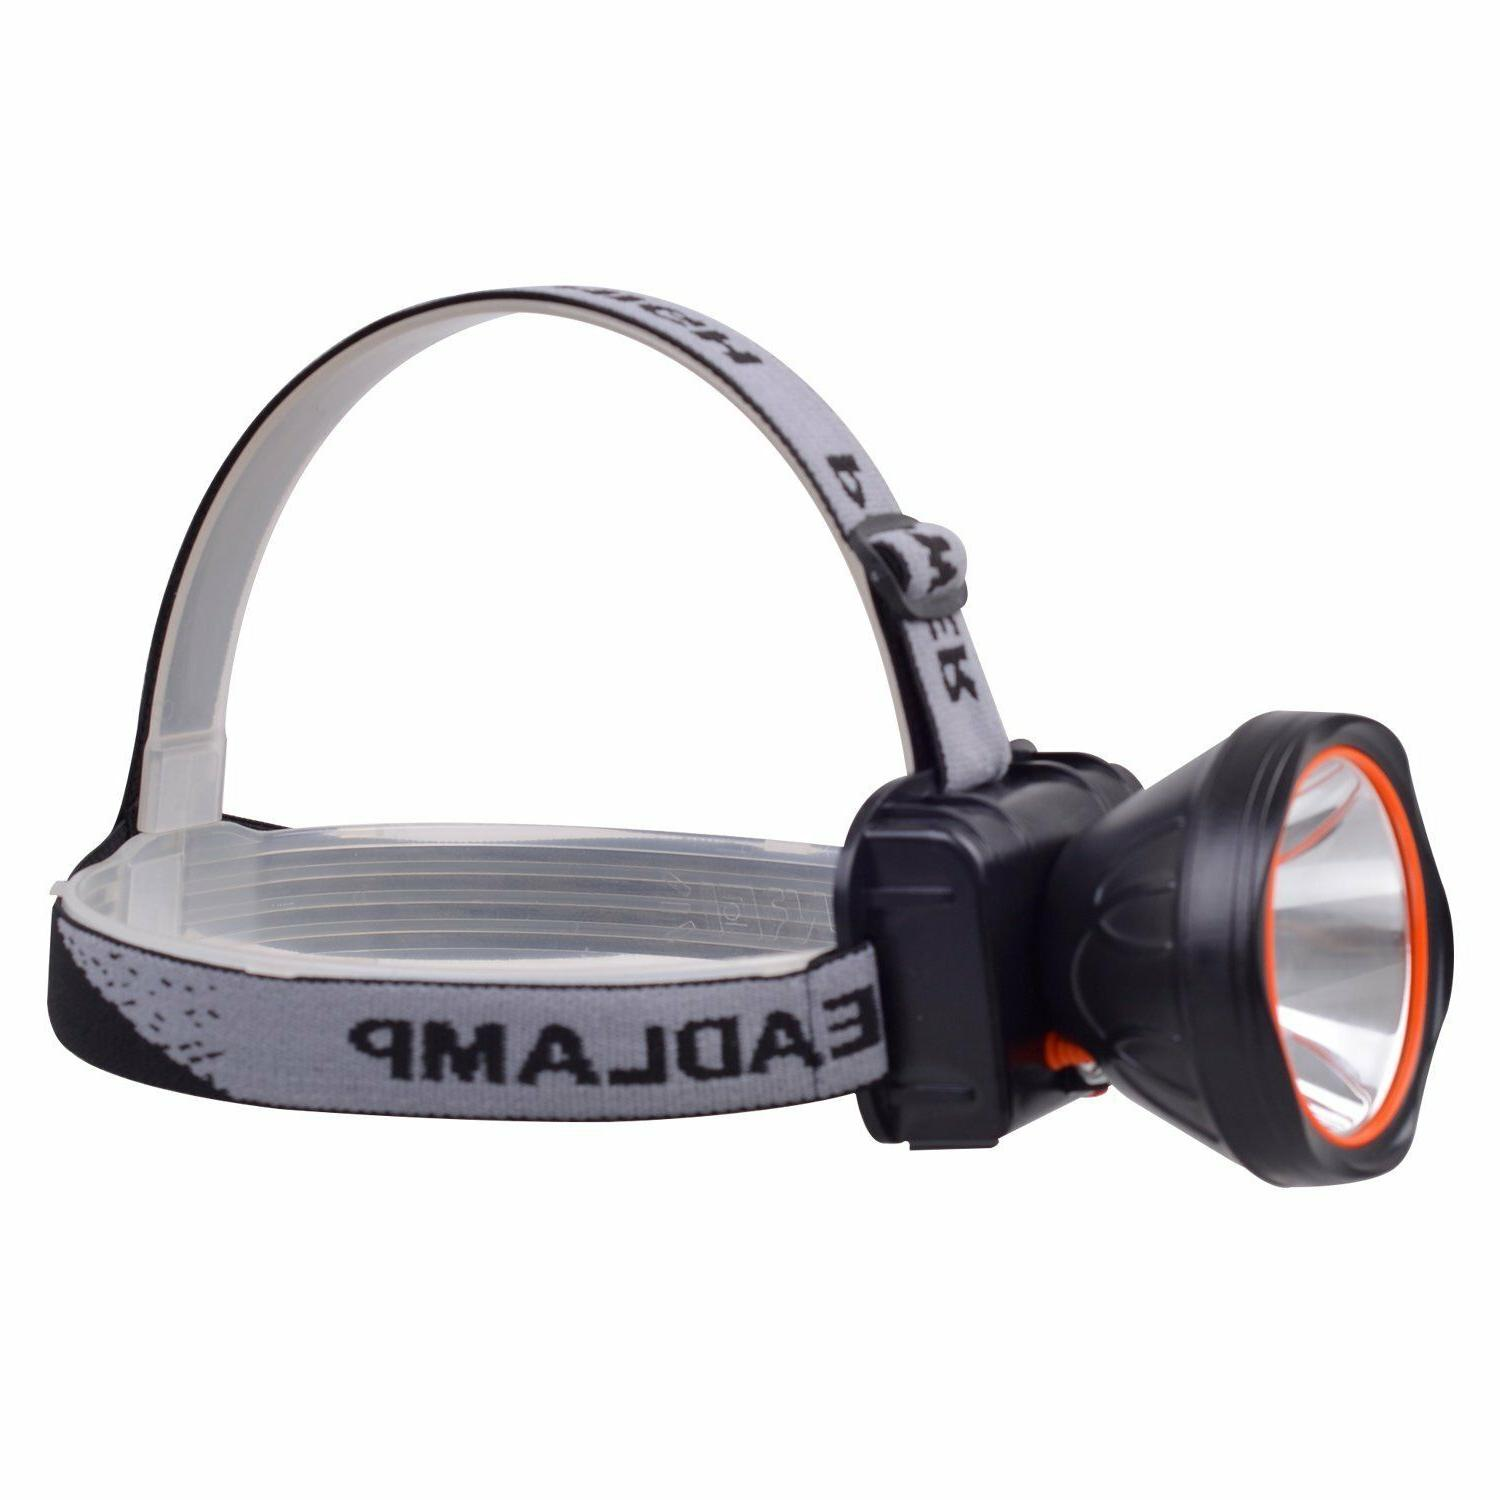 Odear Bright Headlamp Flashlight fishing